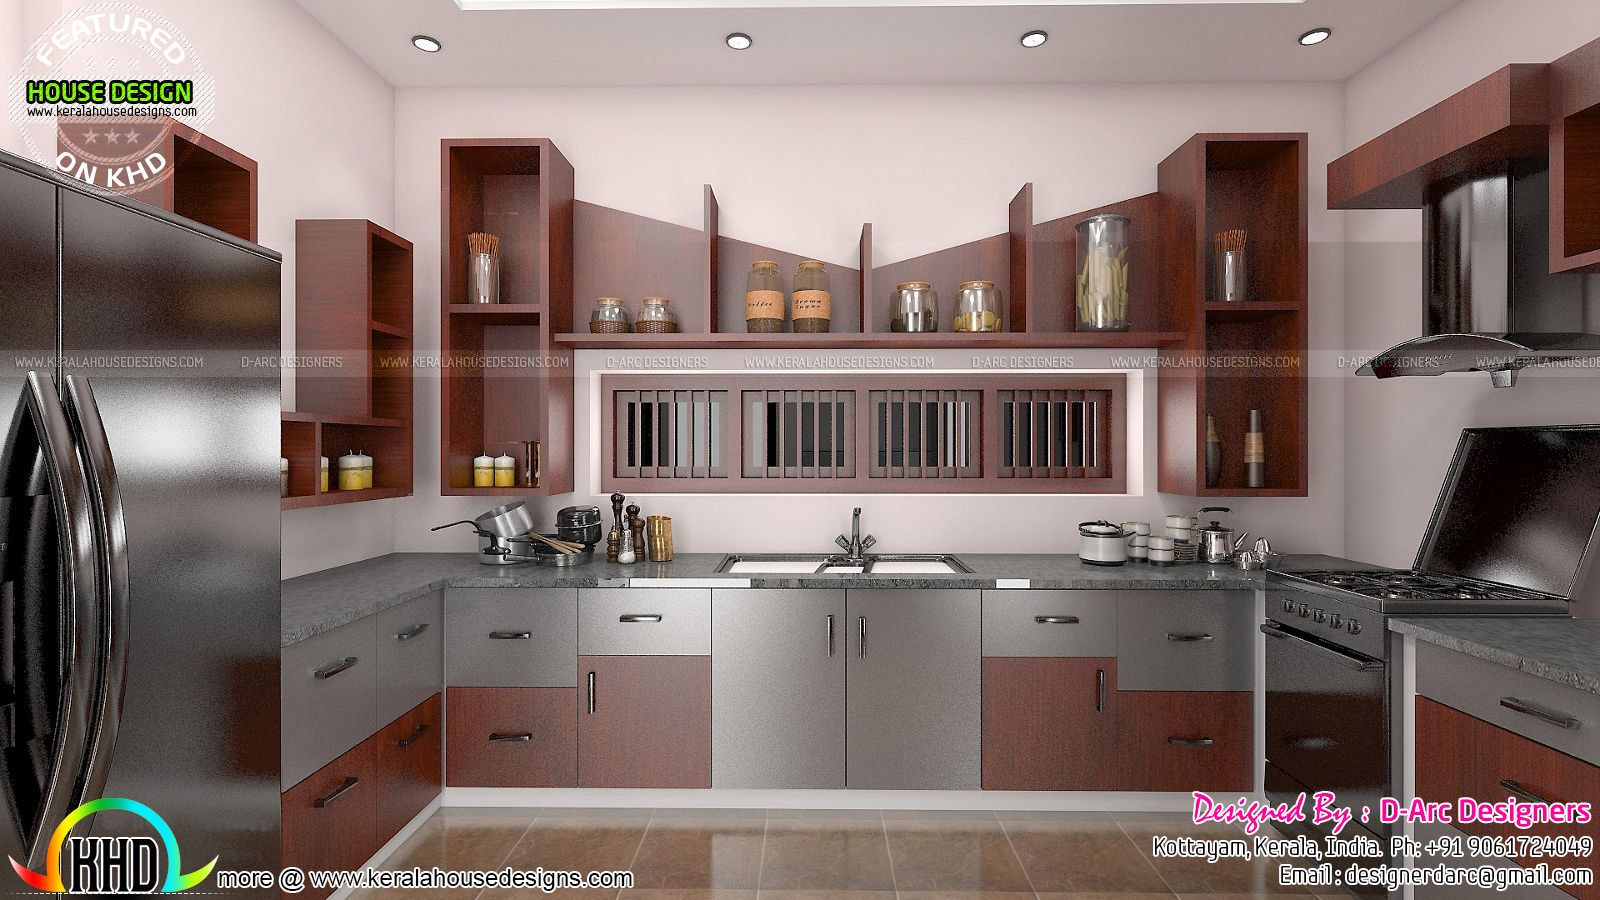 D'life home interiors - kottayam kottayam kerala  house design trends that rocked in years  in   house